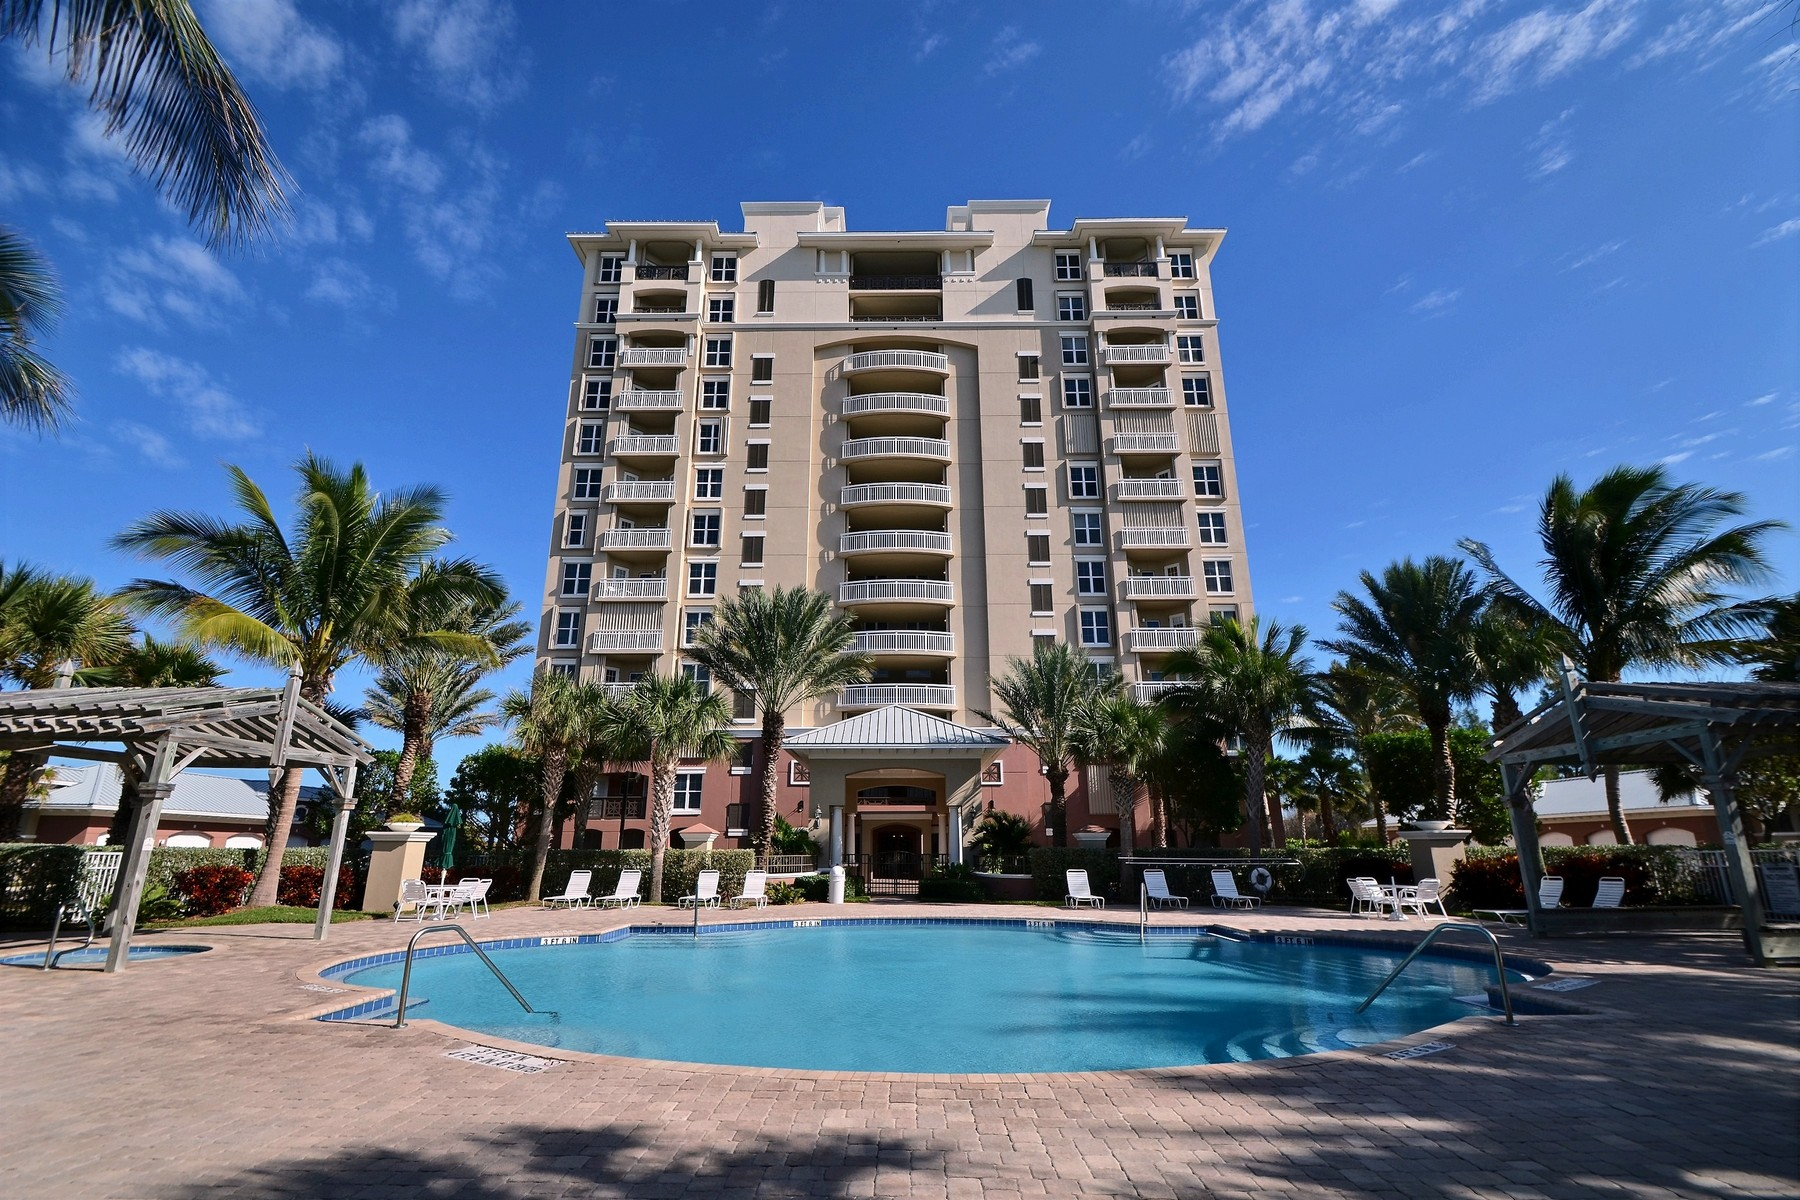 Grand Isle Condo with Stunning Ocean Views 3702 N Highway A1A #704 Hutchinson Island, Florida 34949 Amerika Birleşik Devletleri